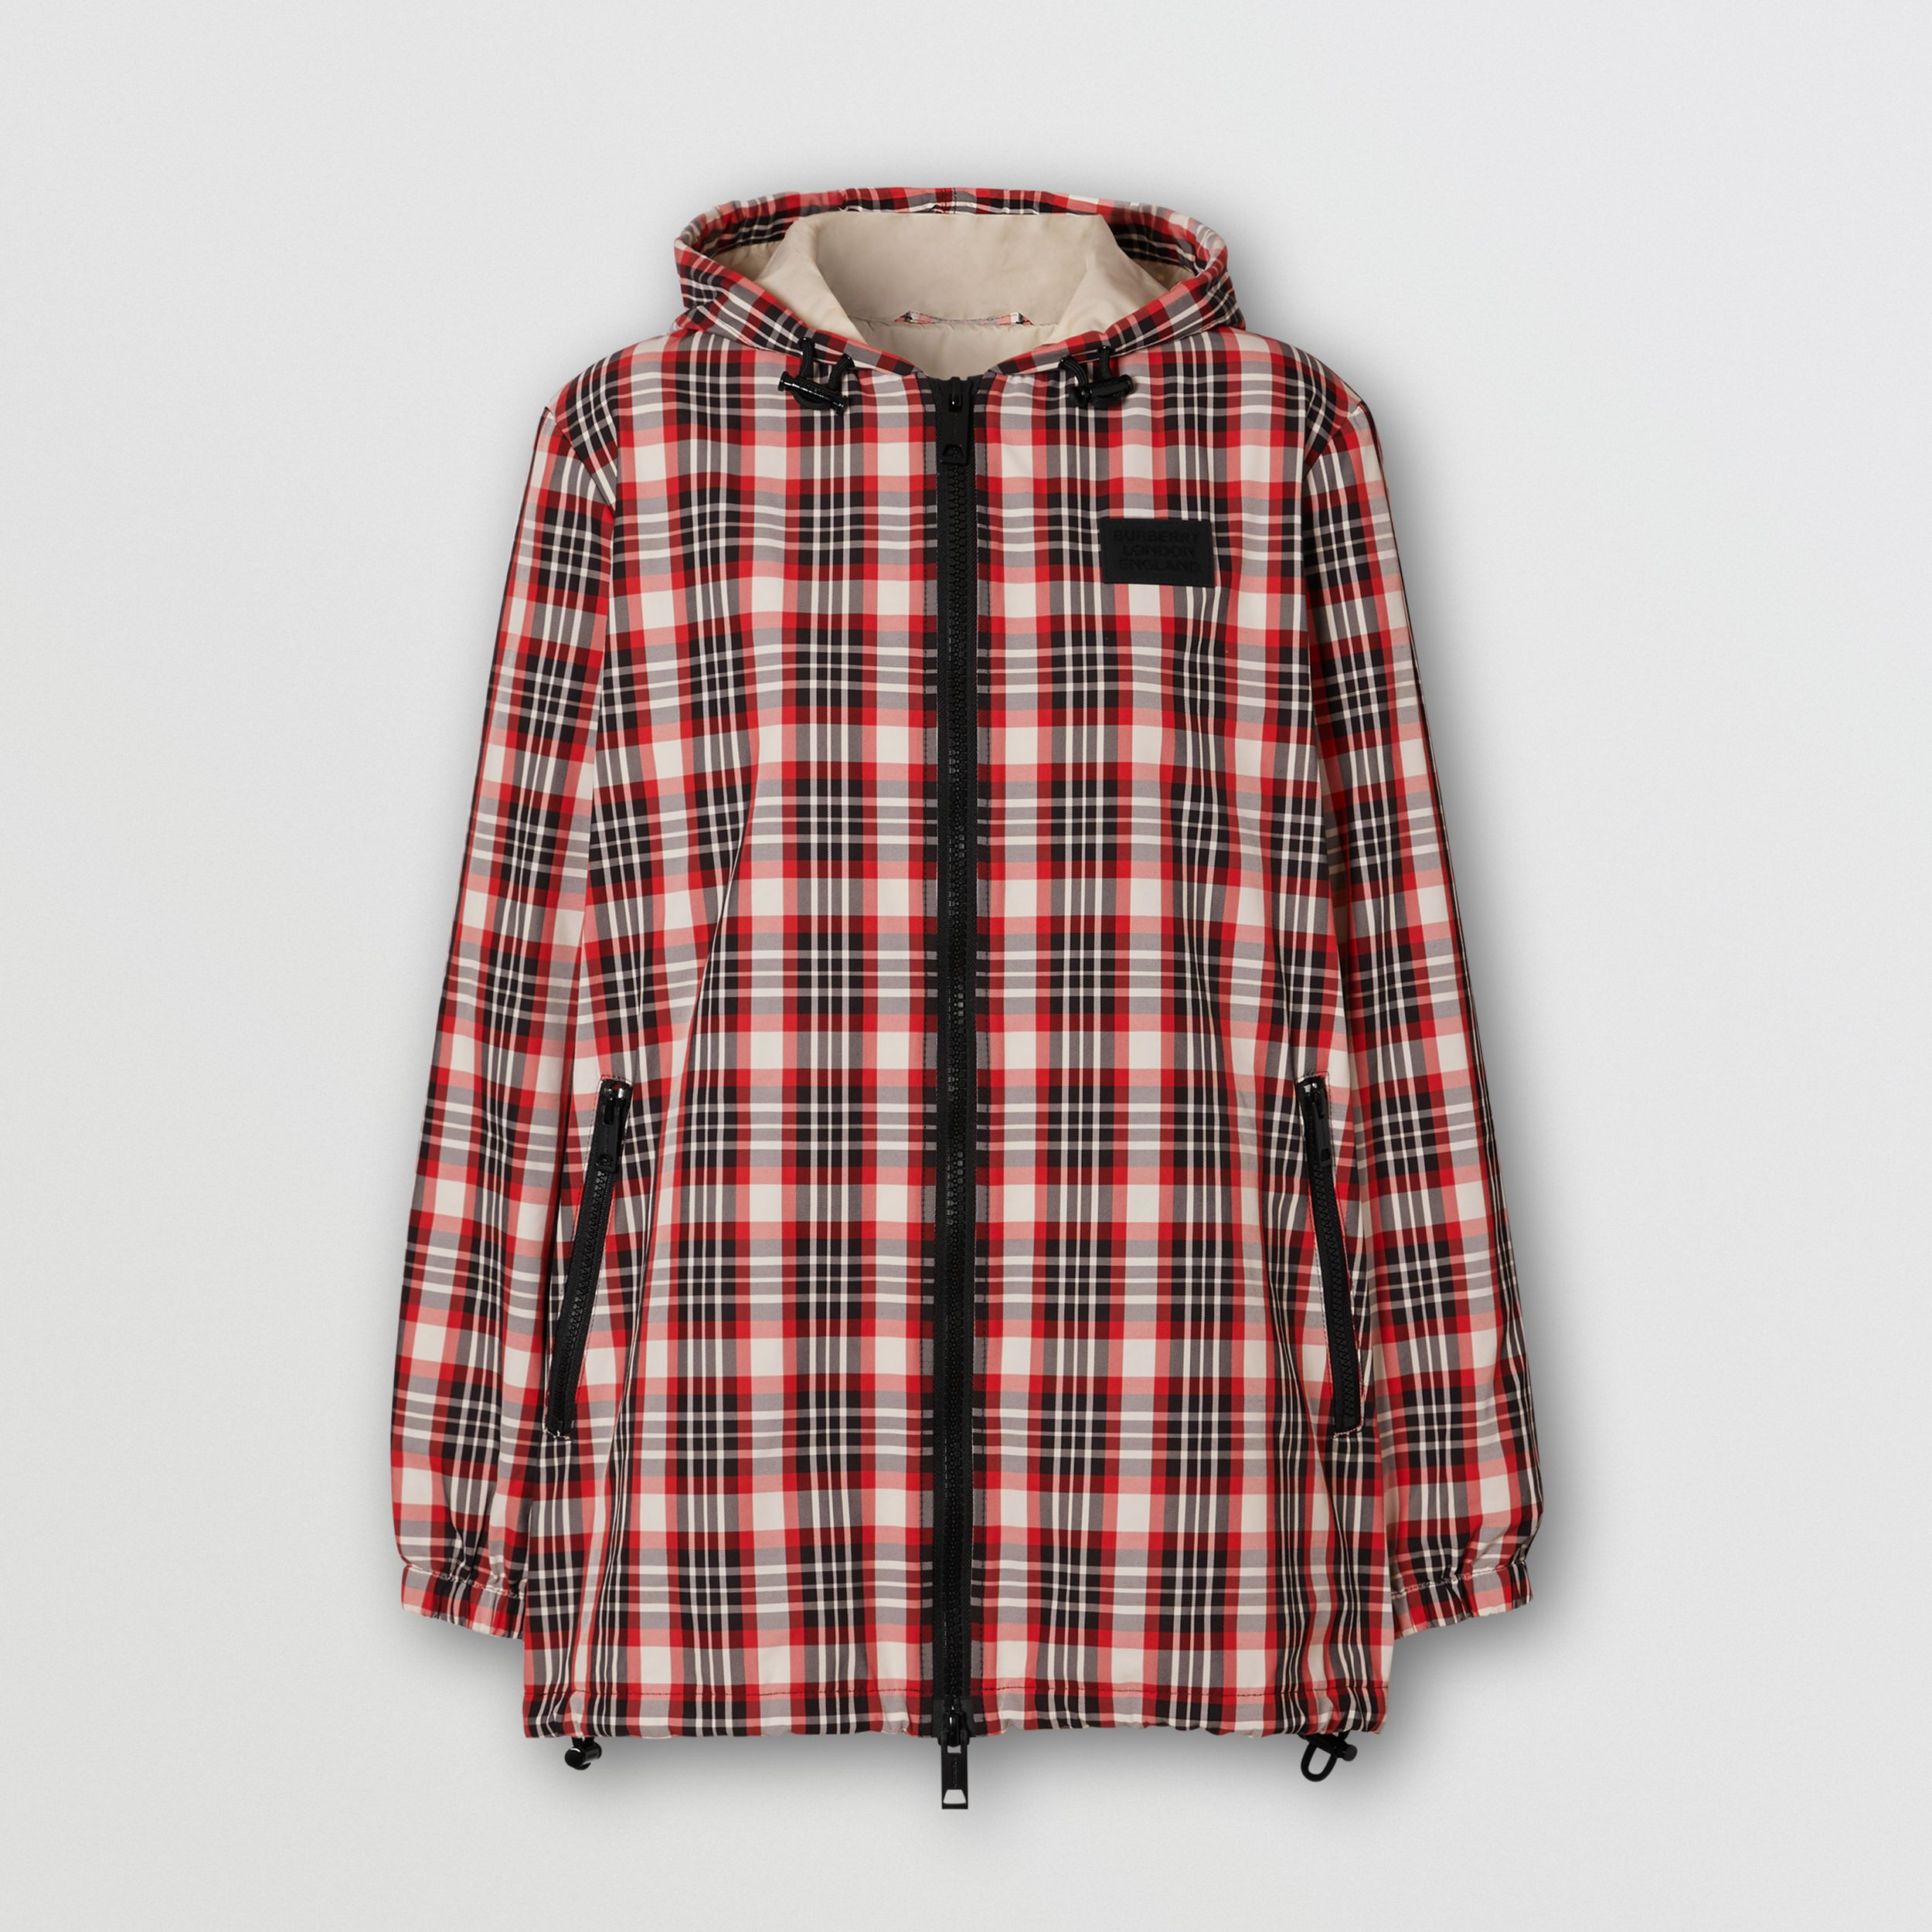 Logo Appliqué Tartan Nylon Parka in Bright Red - Women | Burberry - 4